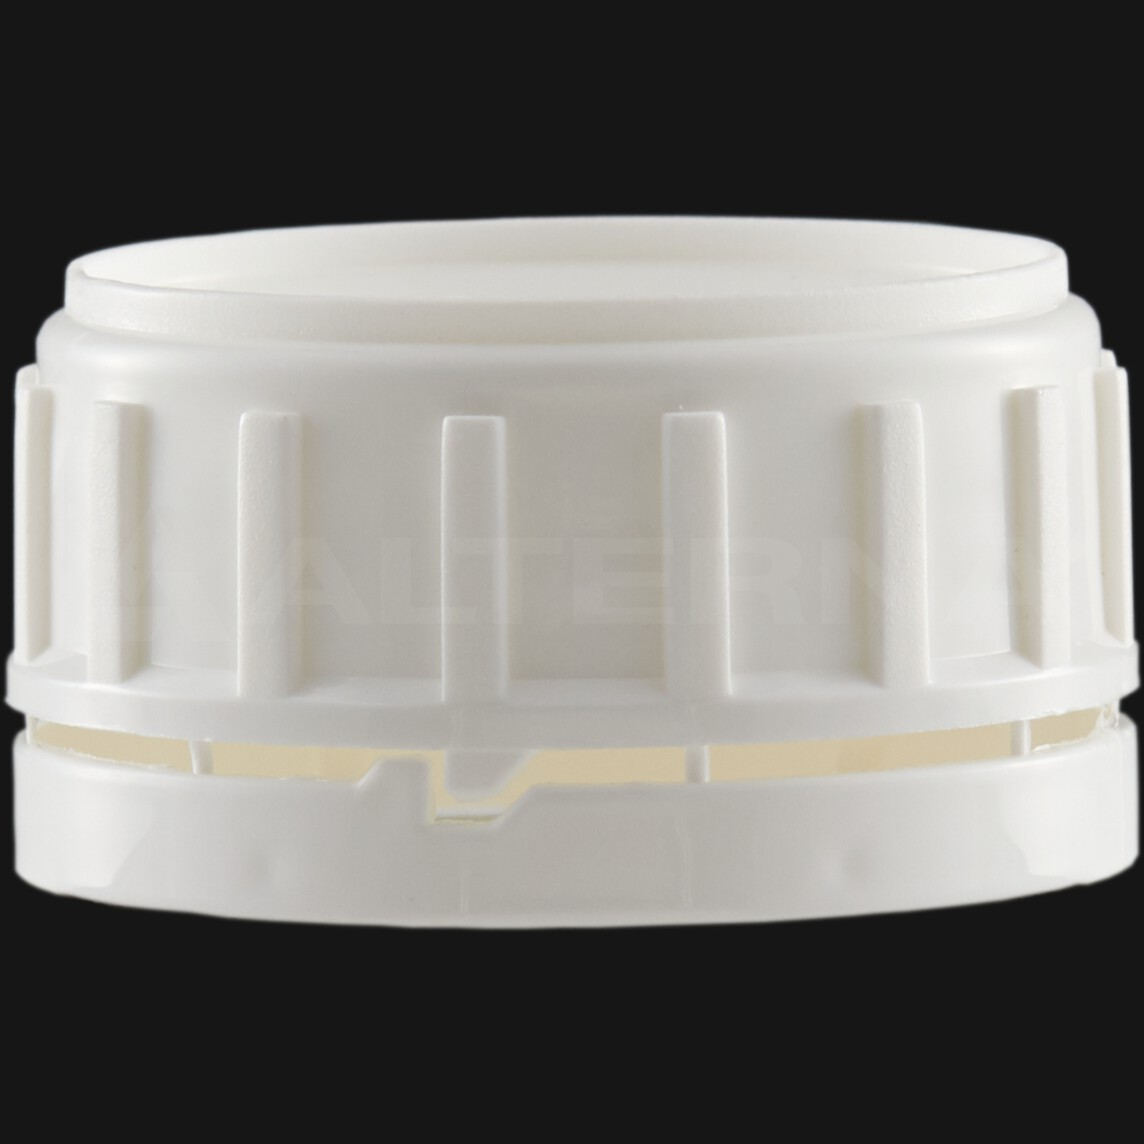 50 mm Foam Seal Vented Secure Cap